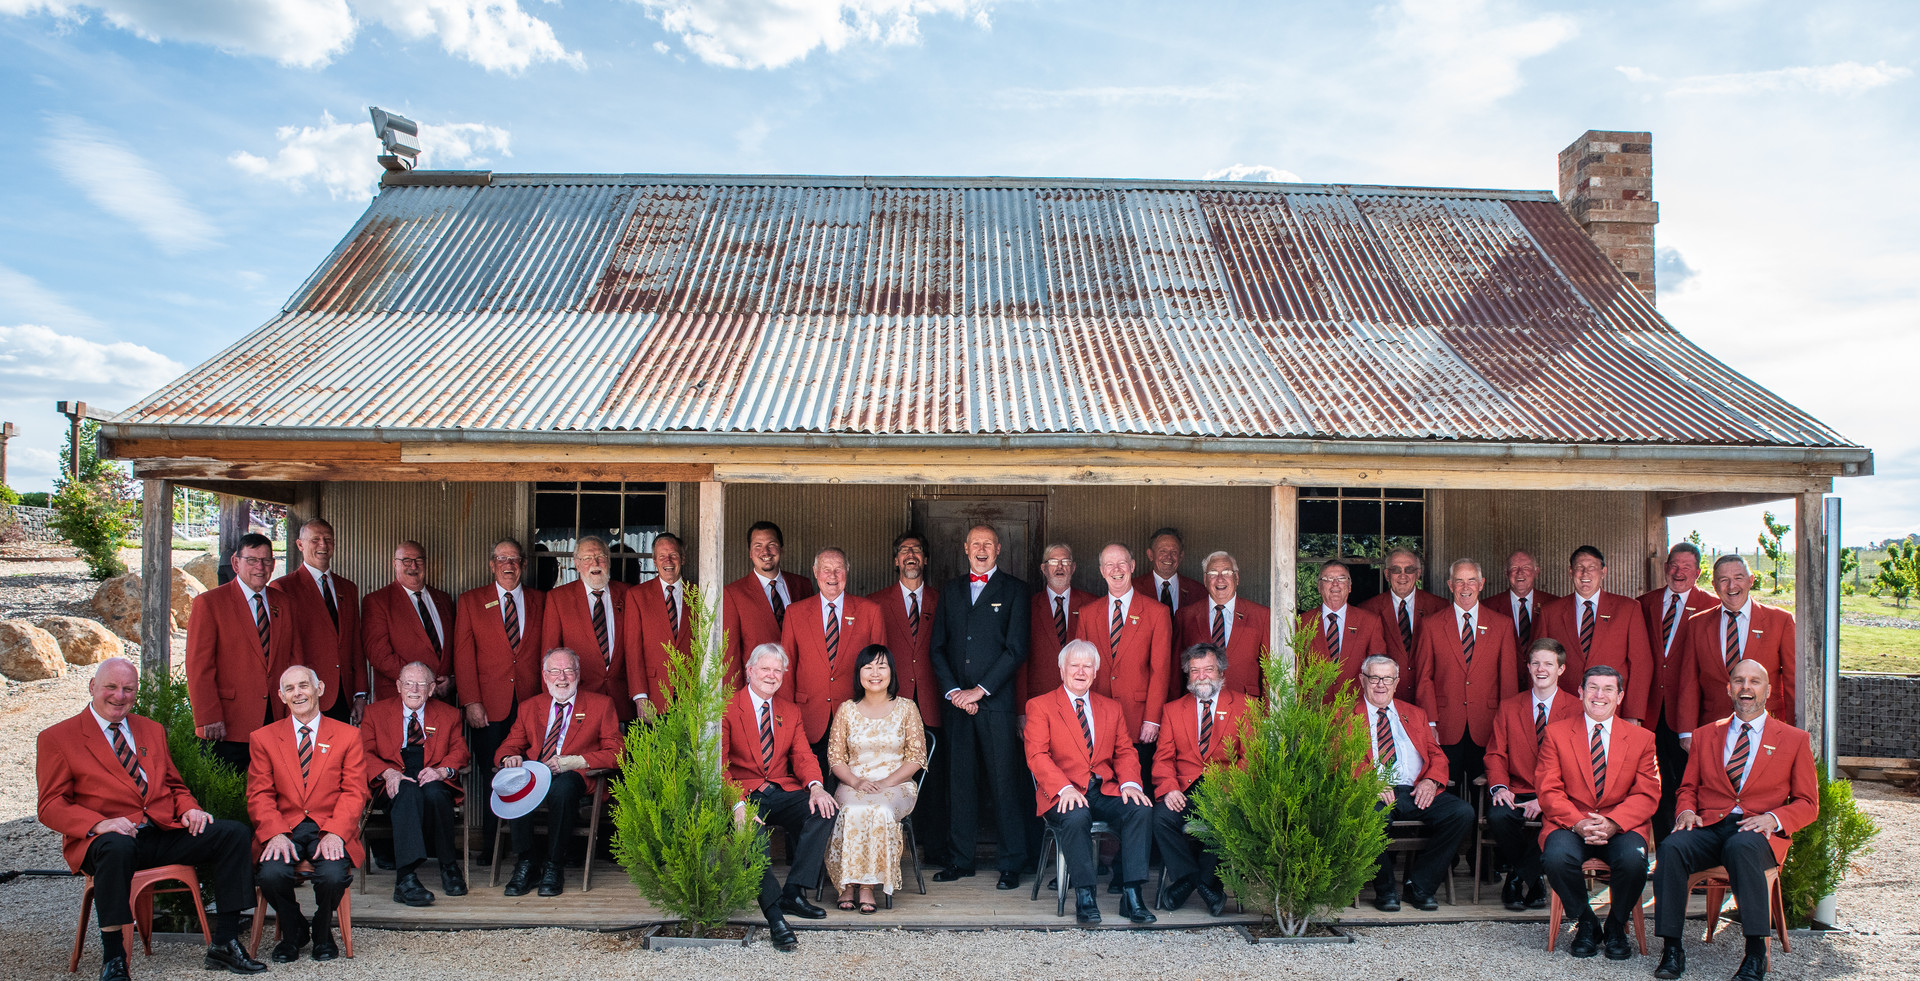 The Choir at Phillip Shaw's Winery